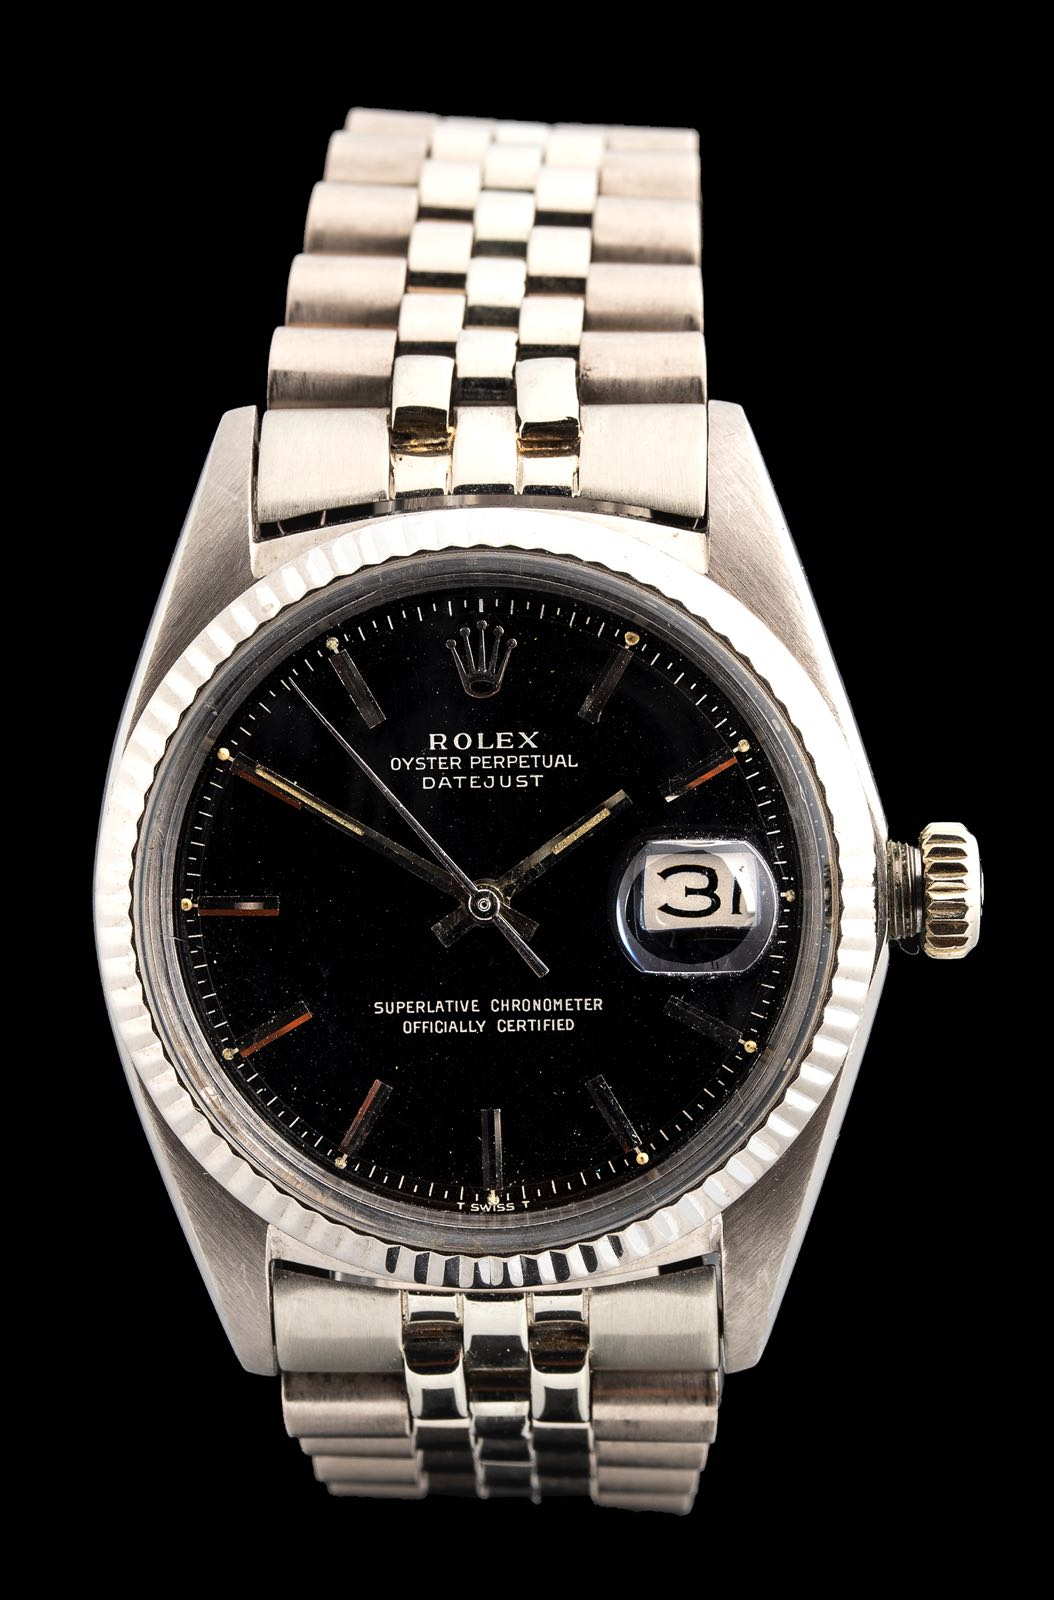 Rolex Datejust White gold ref 1601, 1966